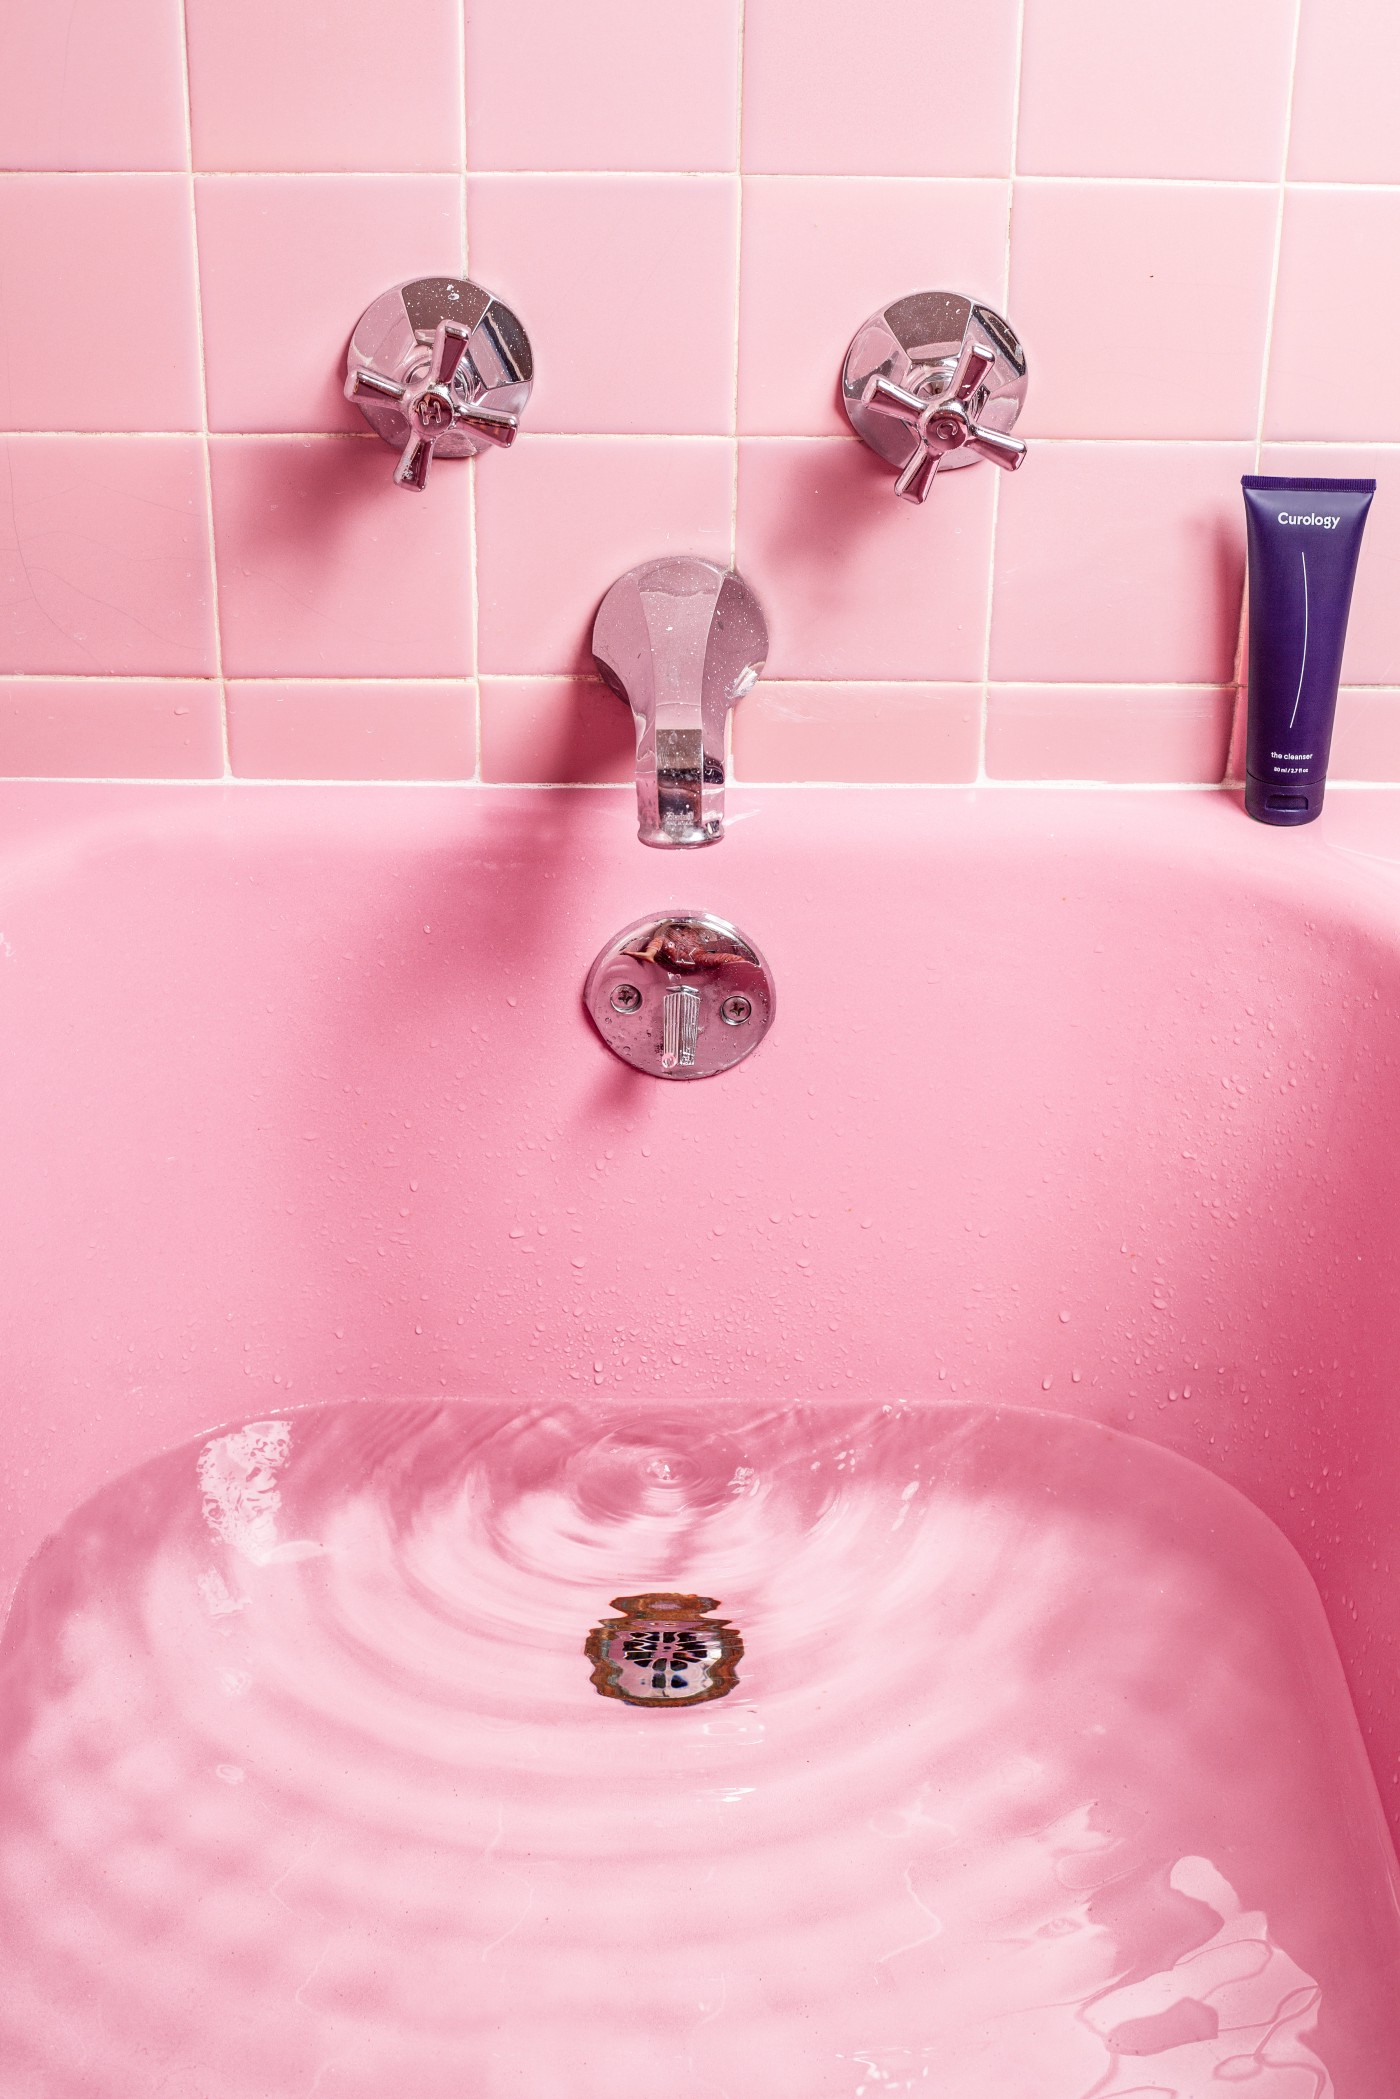 "Pink bath tub filled with rippling clear water. Pink bathroom tile and silver faucet. Dark purple tube of Curology ""the Cleanser"" body care product on the right side of the tub faucet."